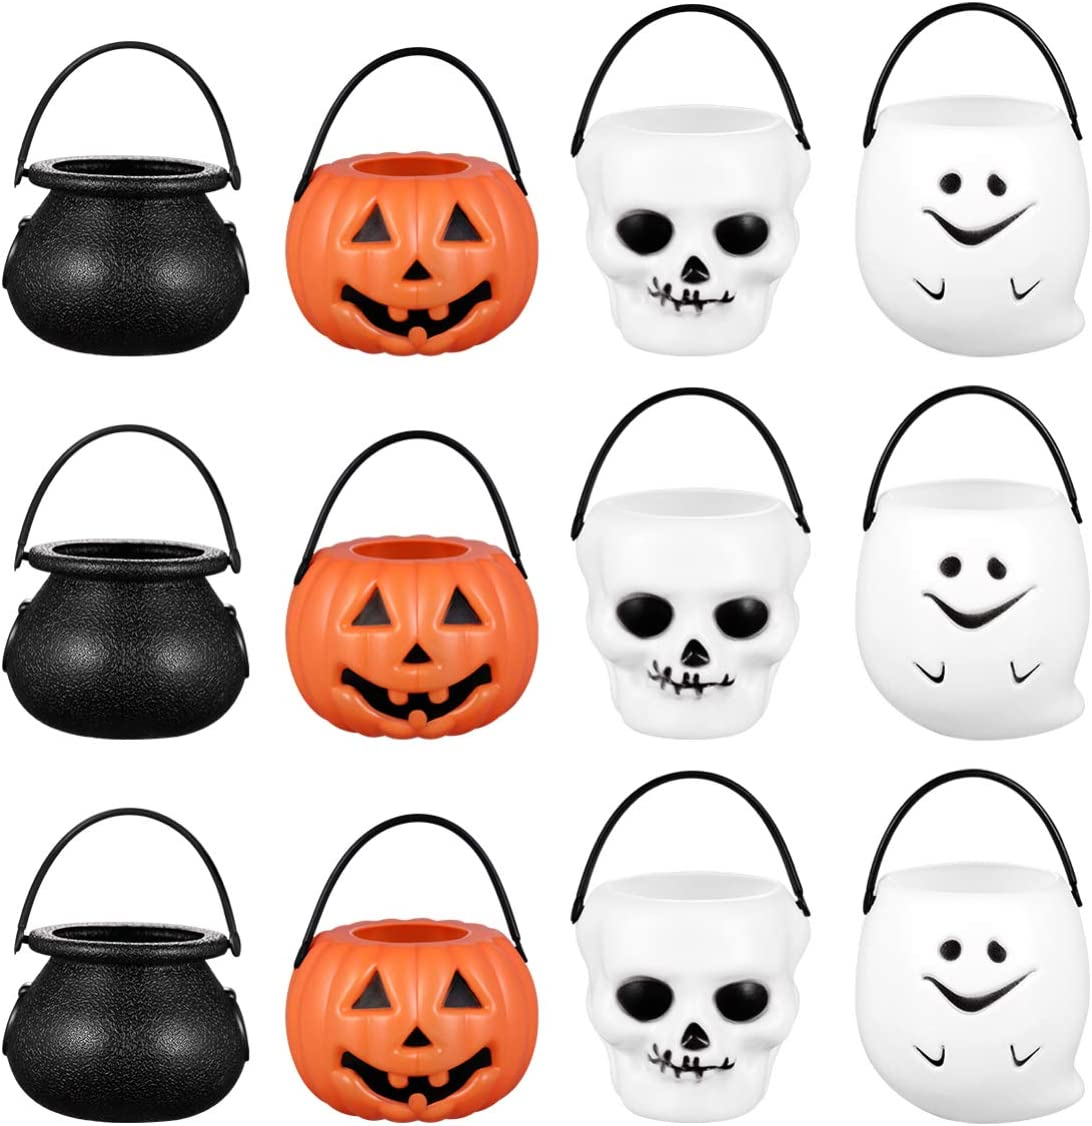 Halloween Candy Bowl Holder Durable Halloween Cookies Snacks Party Favors Decor for Halloween Party 12pcs